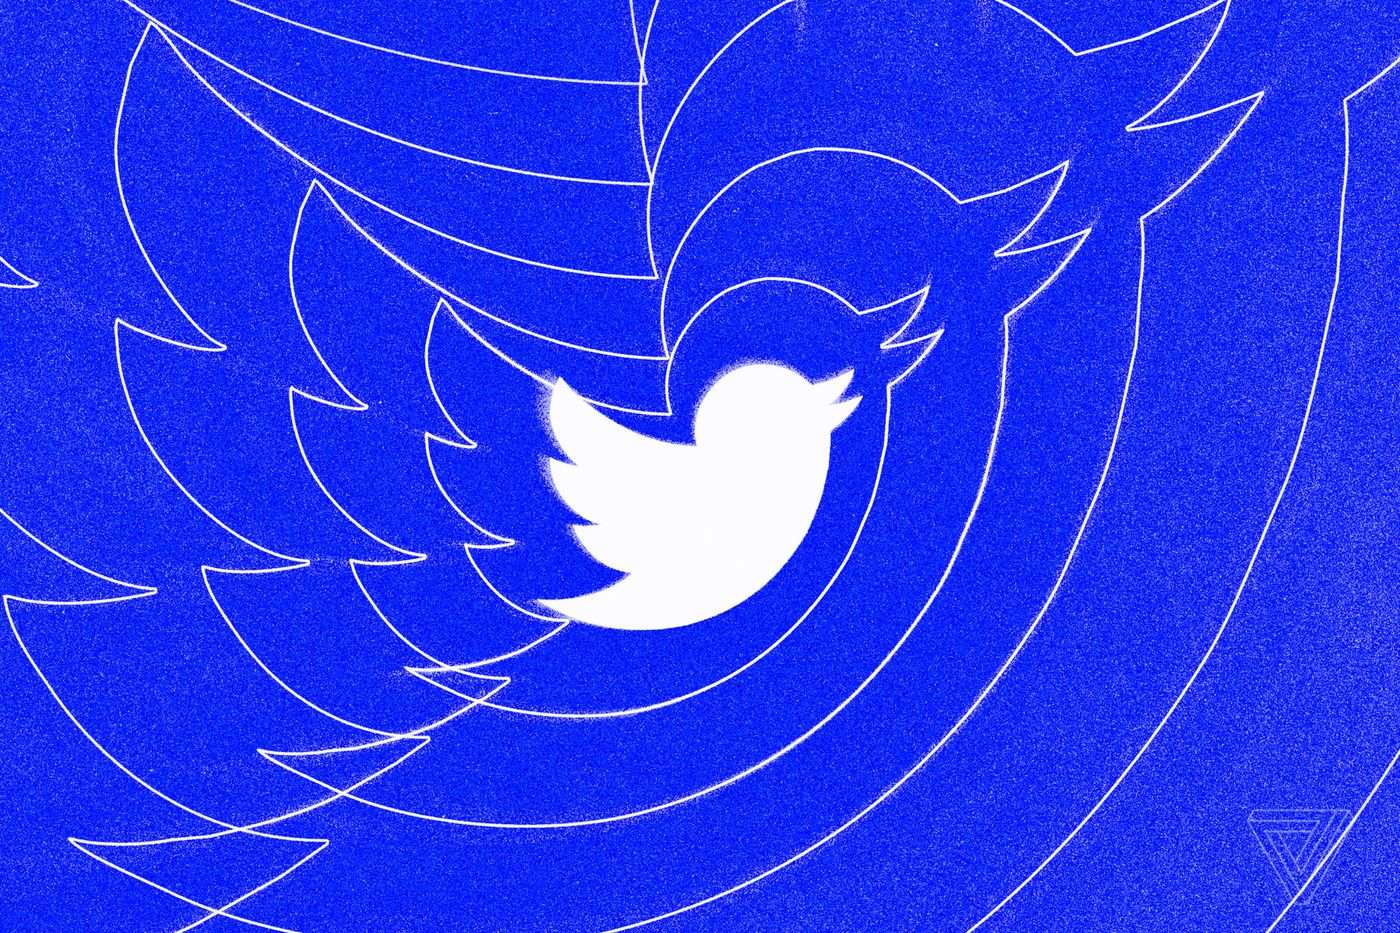 Twitter is throttling retweeting until after the election. They're knee-capping their own business to stick it to Republicans and prevent any pro-Trump narratives from taking hold. (theverge.com)